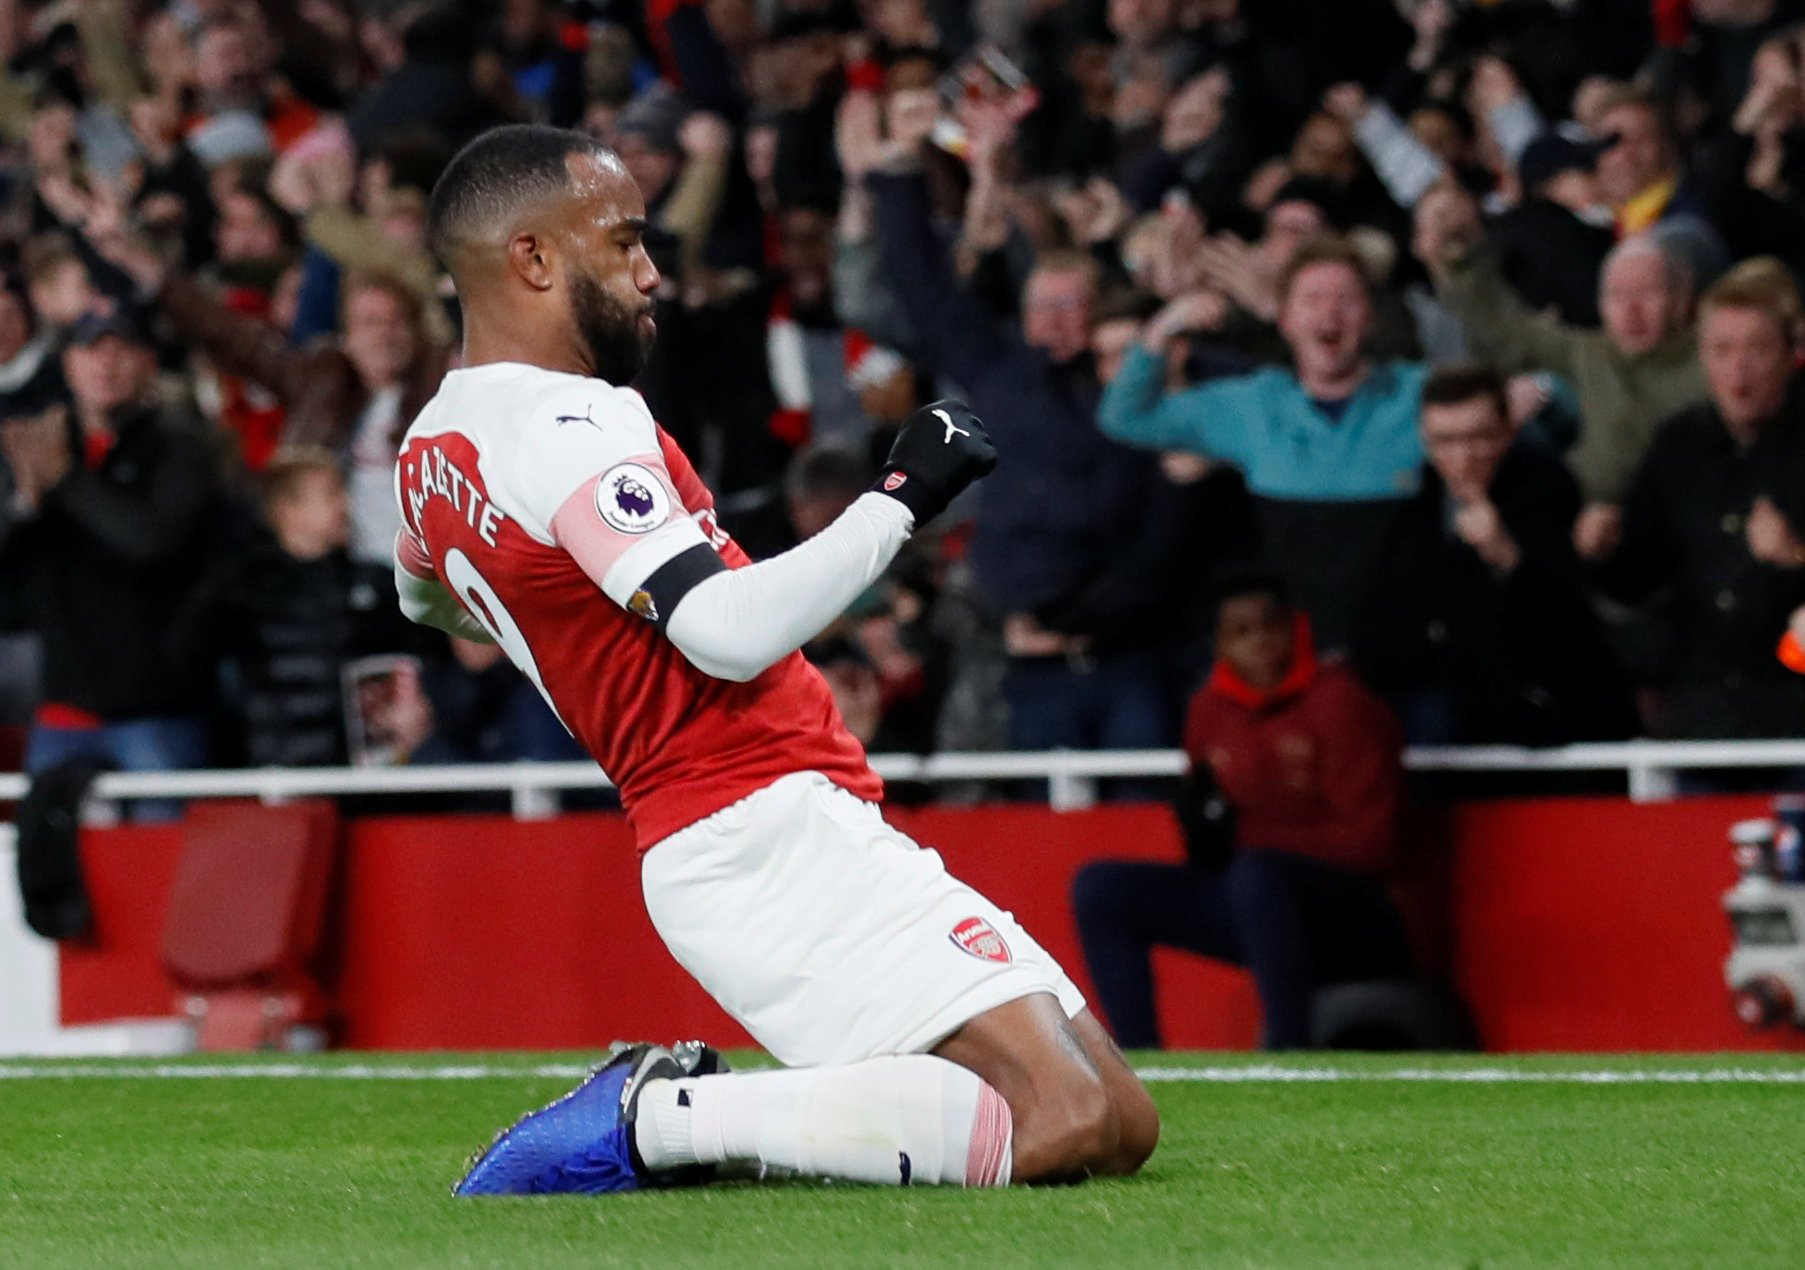 """Soccer Football - Premier League - Arsenal v Liverpool - Emirates Stadium, London, Britain - November 3, 2018 Arsenal's Alexandre Lacazette celebrates scoring their first goal REUTERS/David Klein EDITORIAL USE ONLY. No use with unauthorized audio, video, data, fixture lists, club/league logos or """"live"""" services. Online in-match use limited to 75 images, no video emulation. No use in betting, games or single club/league/player publications. Please contact your account representative for further details."""